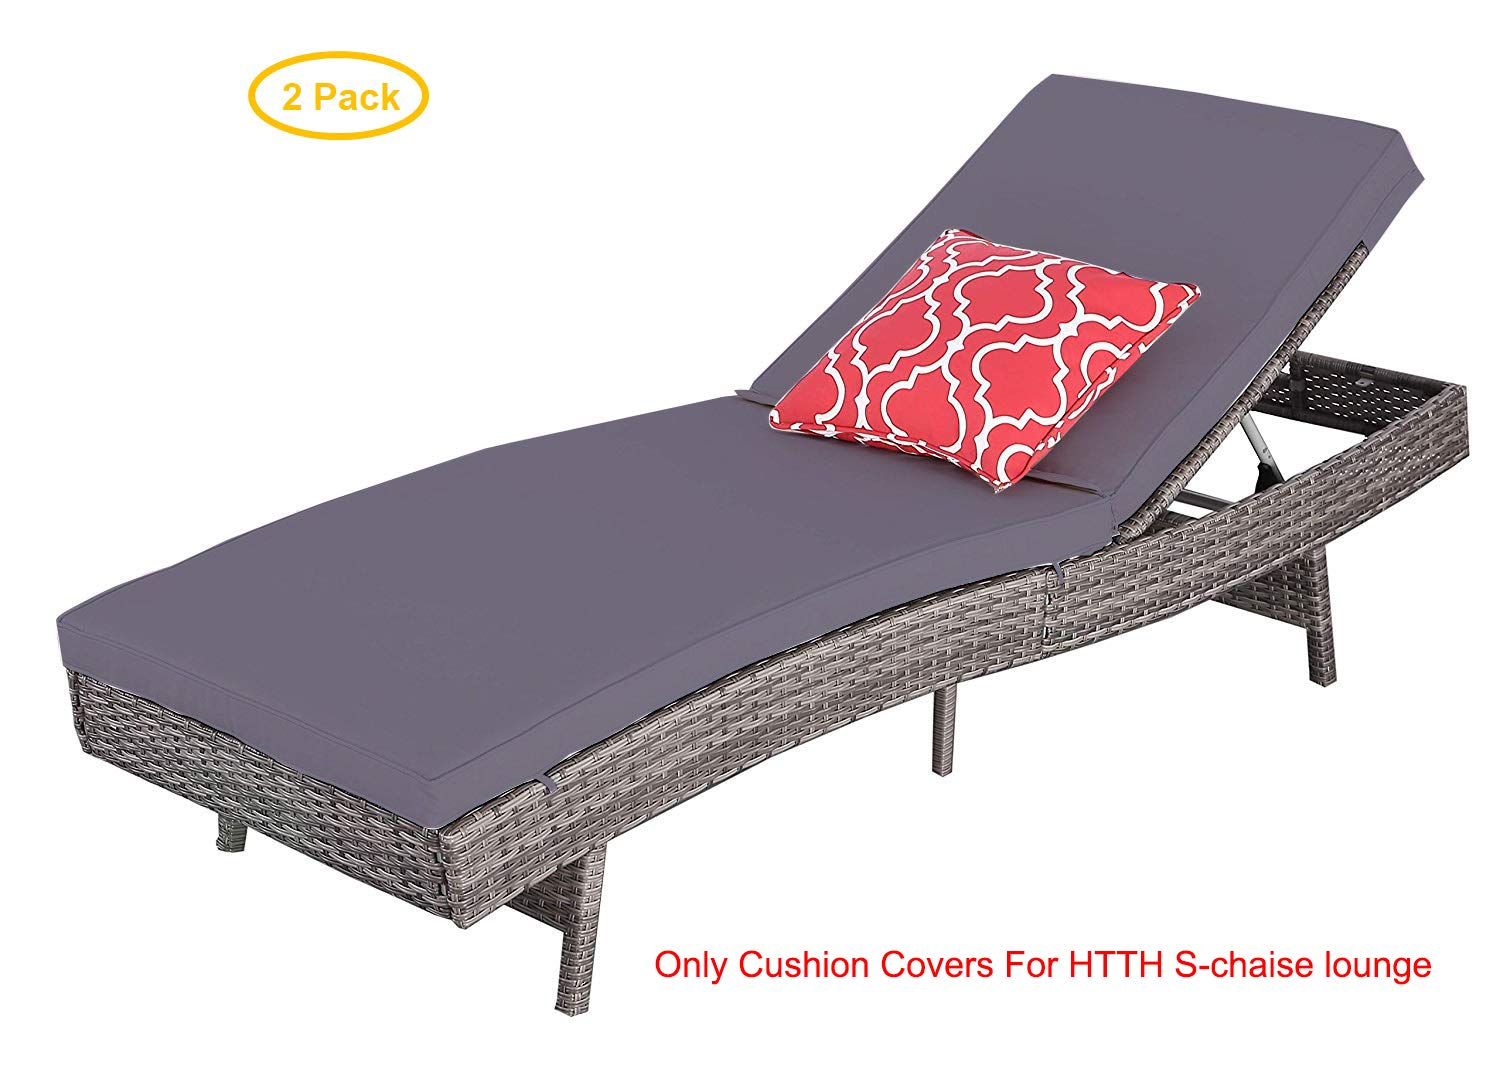 HTTH Outdoor Pool Garden Patio Chaise Lounge Recliner Bed Chair 2'' Cushion Covers (Dark Grey)